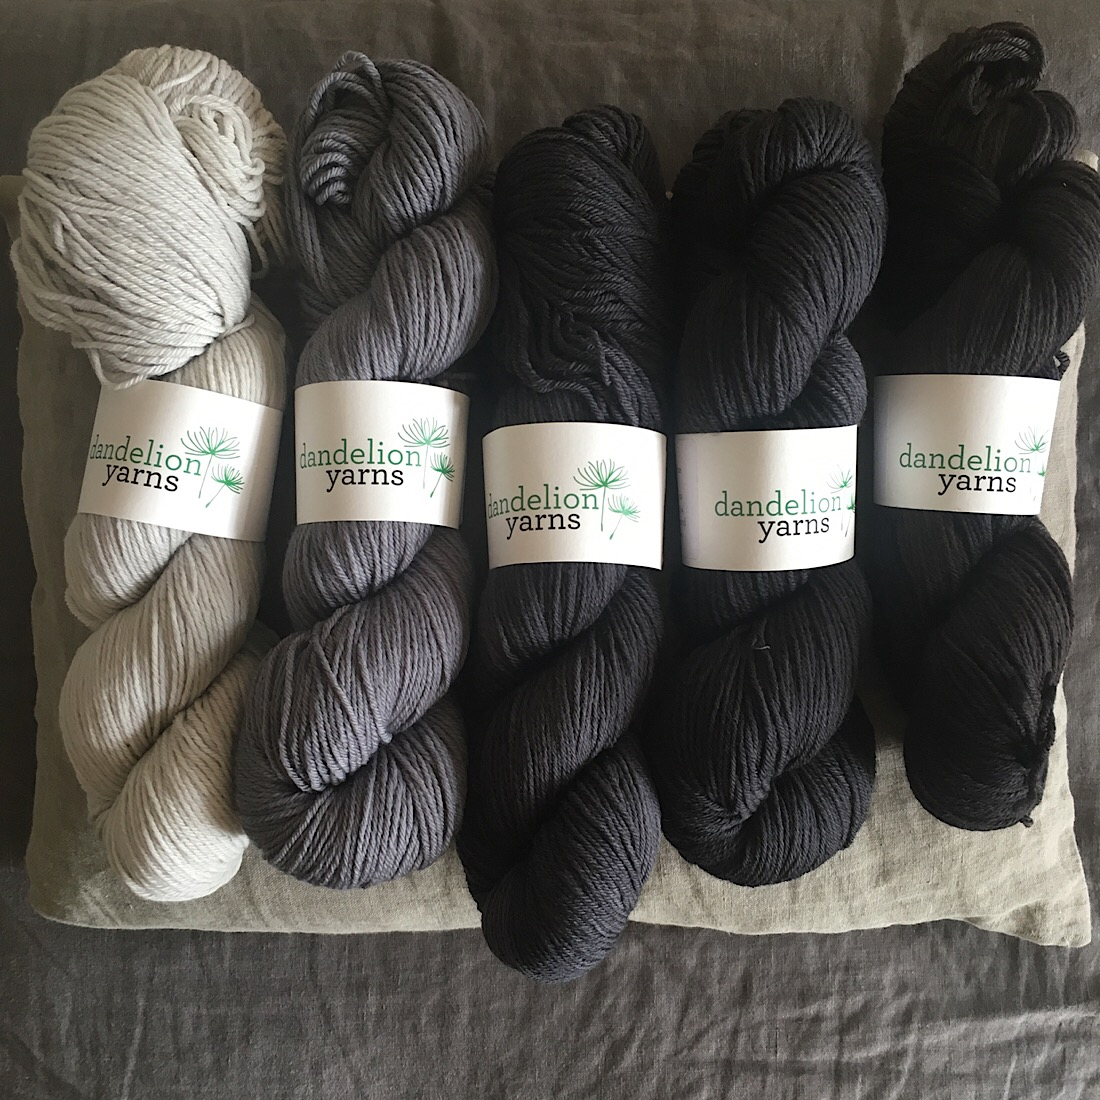 Dandelion Yarns at Loop London